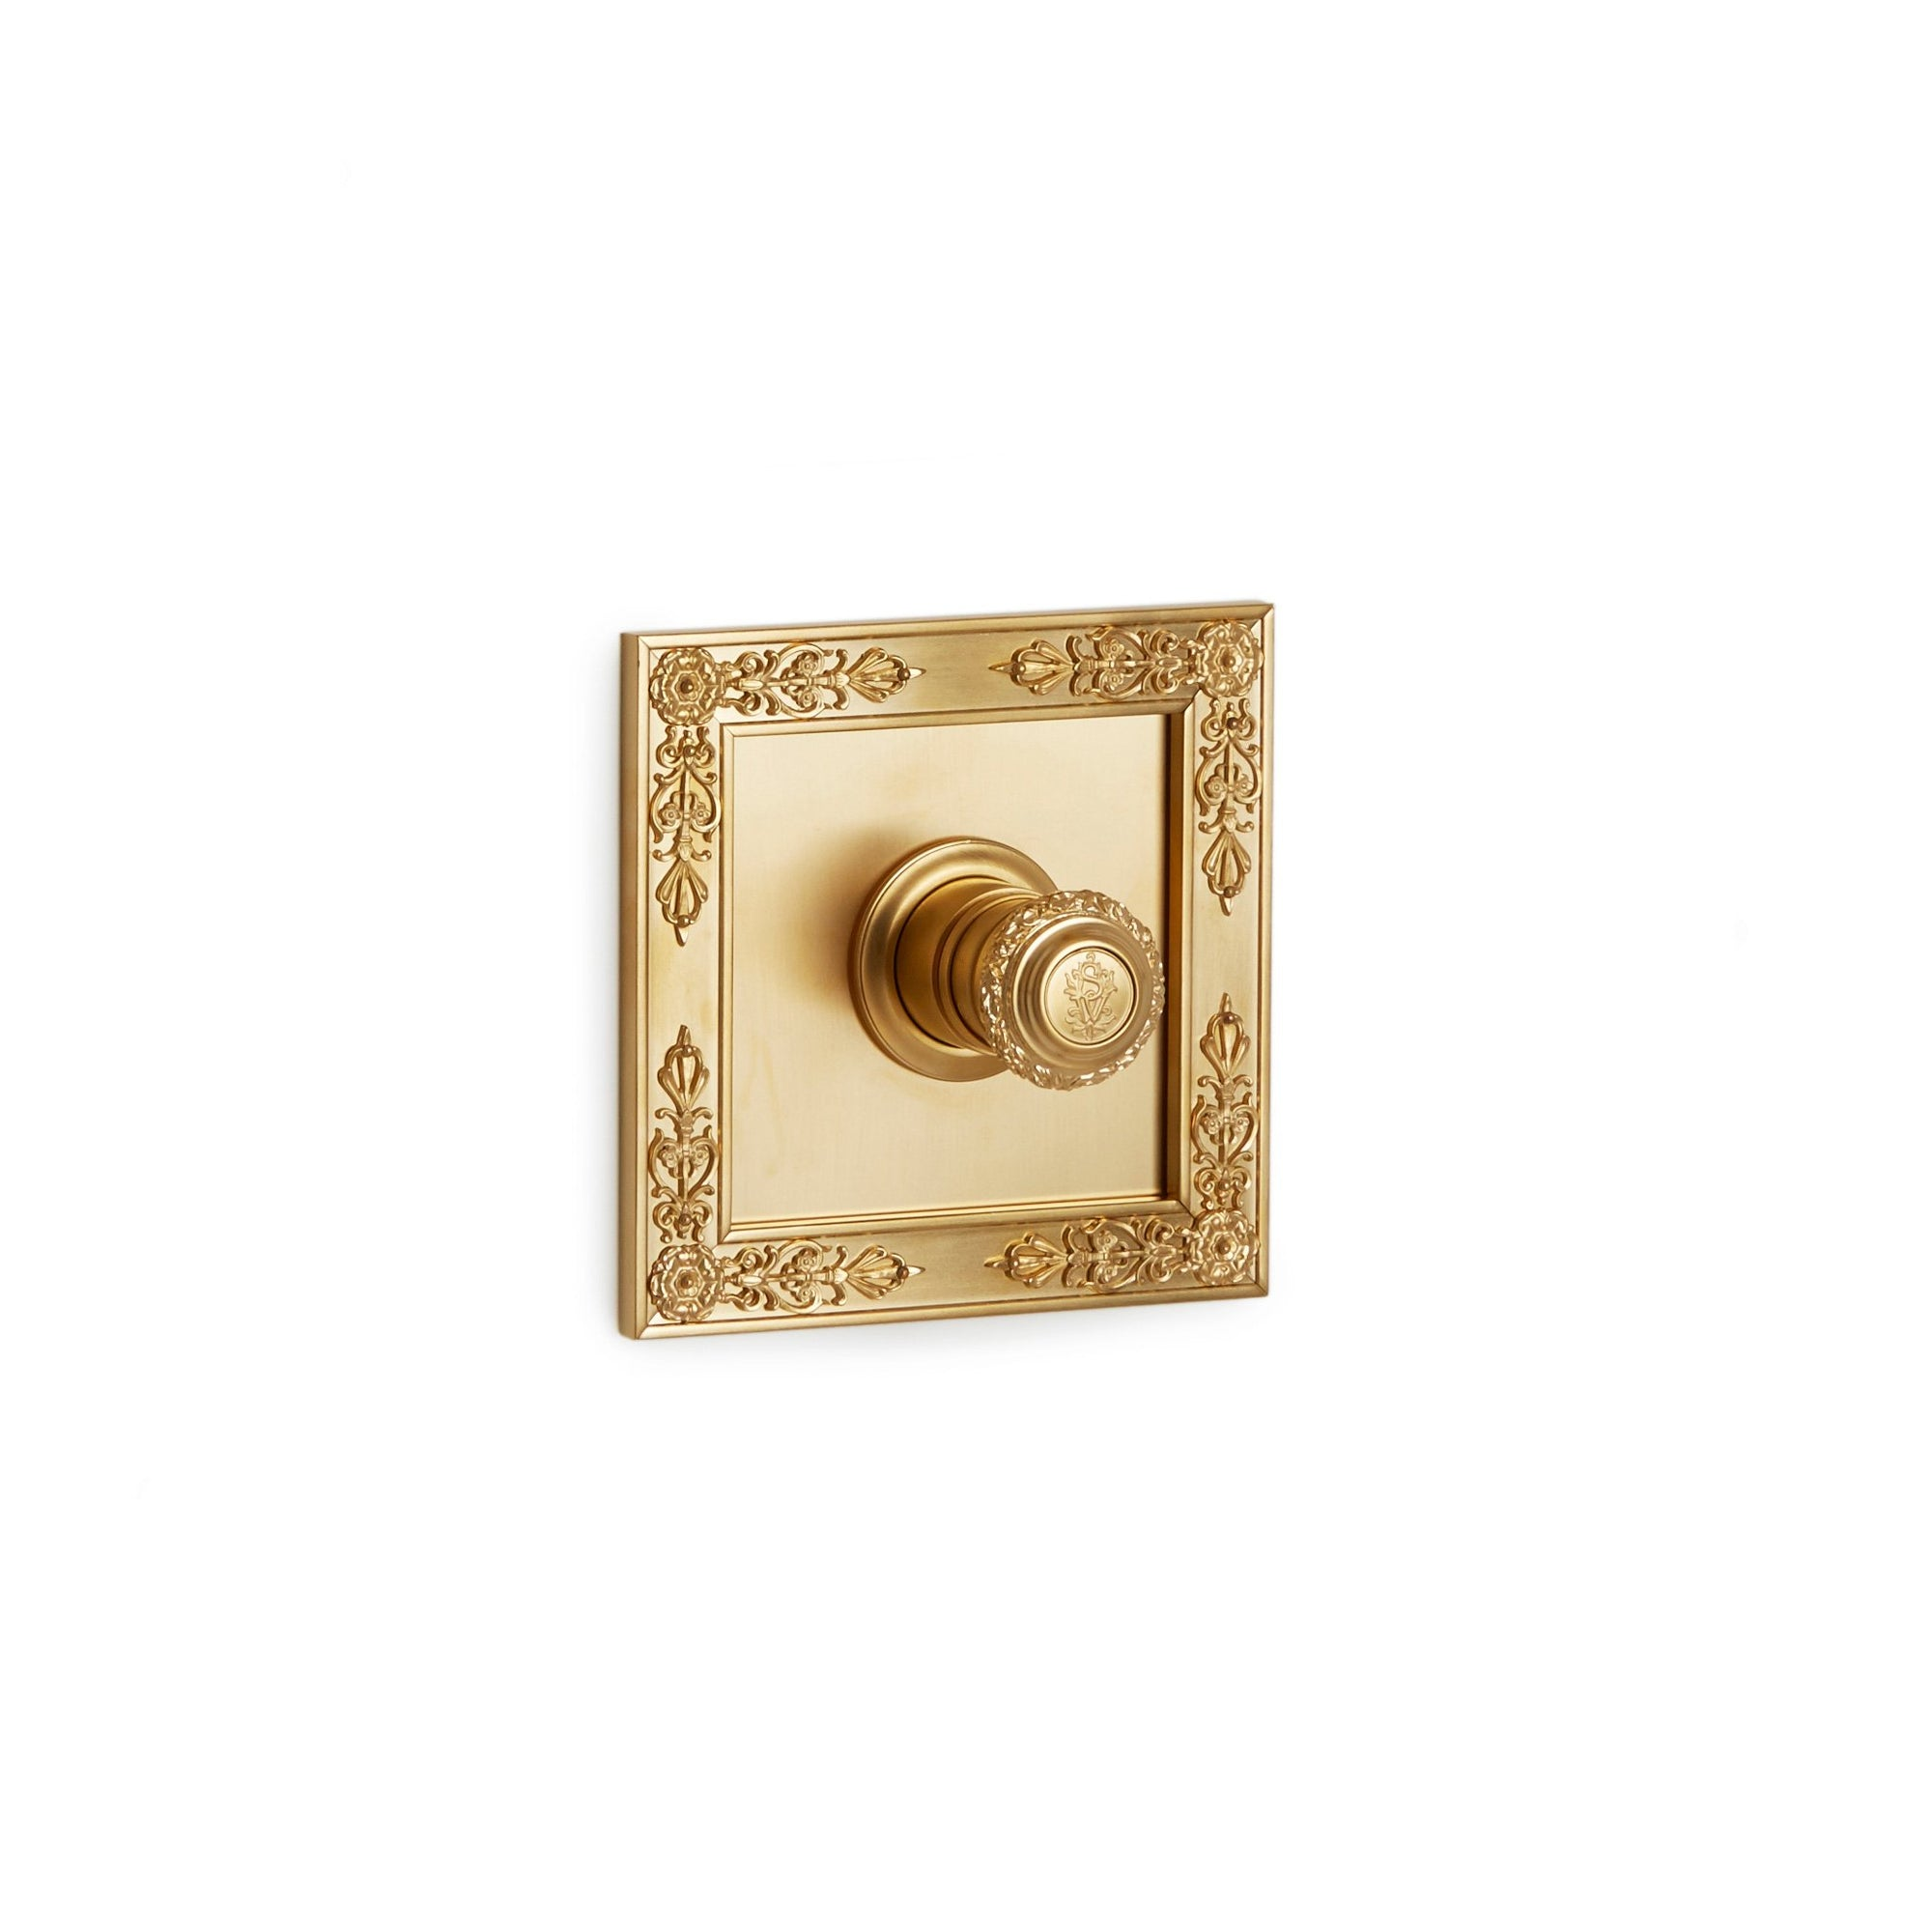 TMO04AC-LOGO-GP Sherle Wagner International Filigree High Flow Thermostatic Trim in Gold Plate metal finish